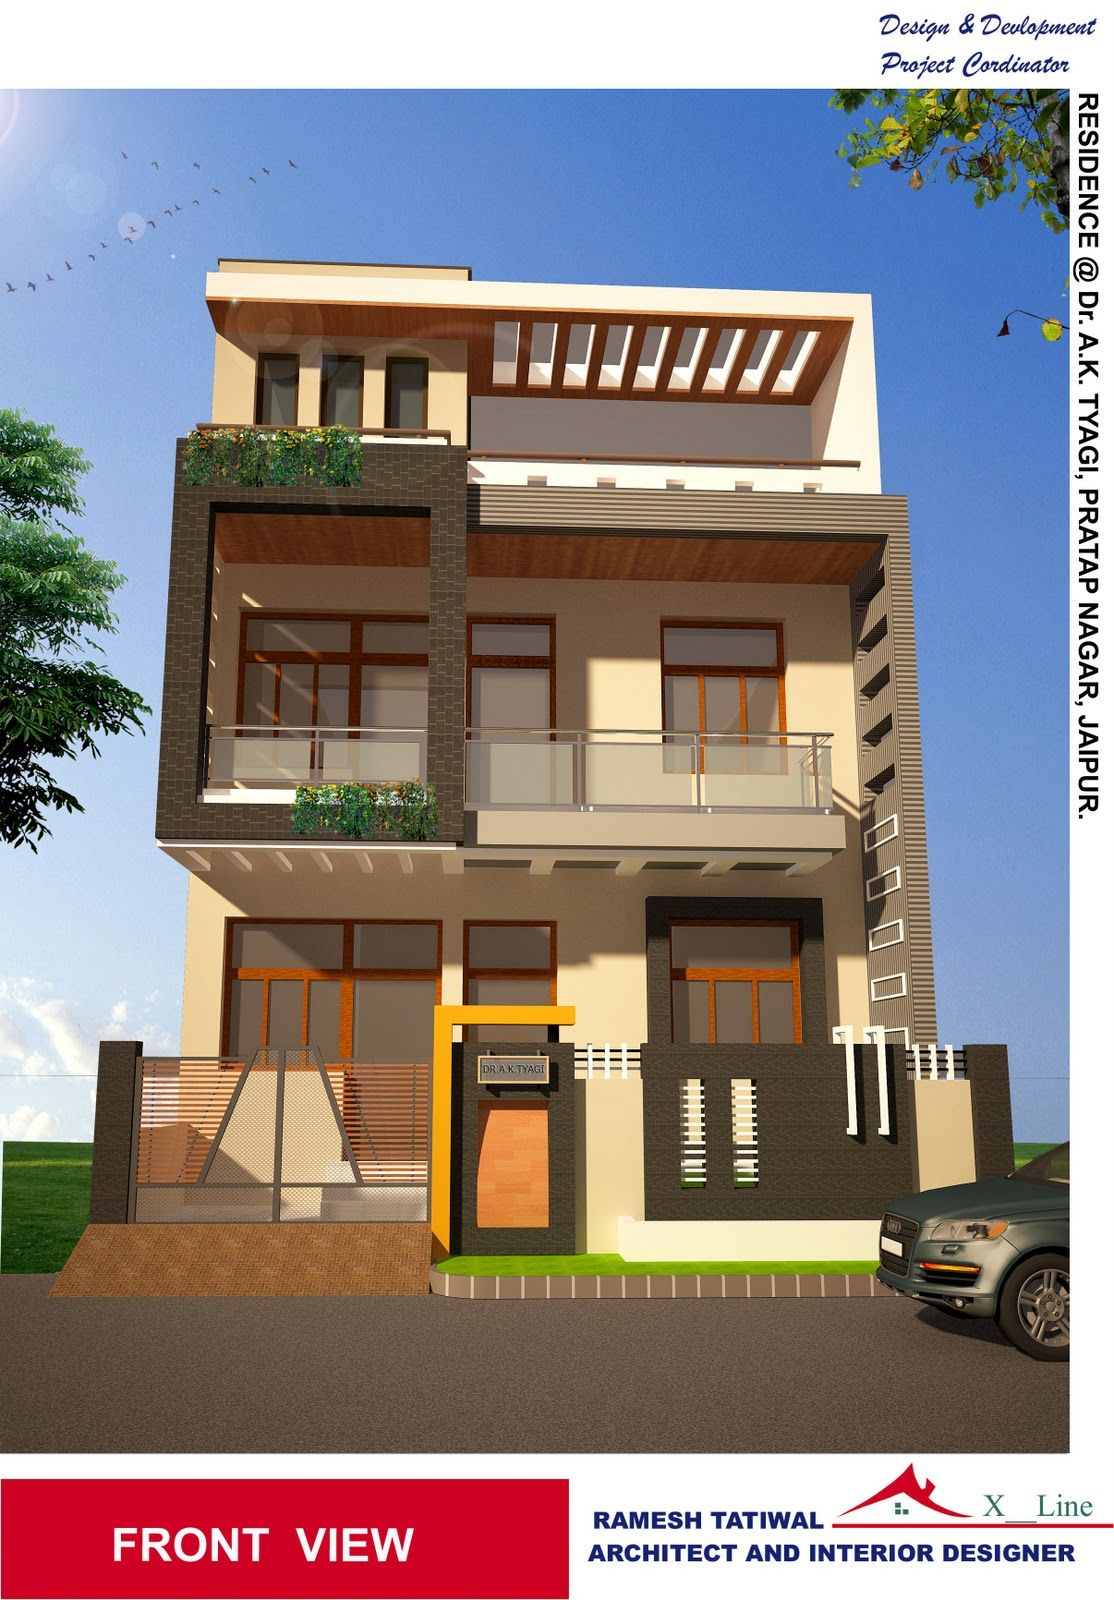 Housedesigns modern indian home architecture design from Indian home design plans